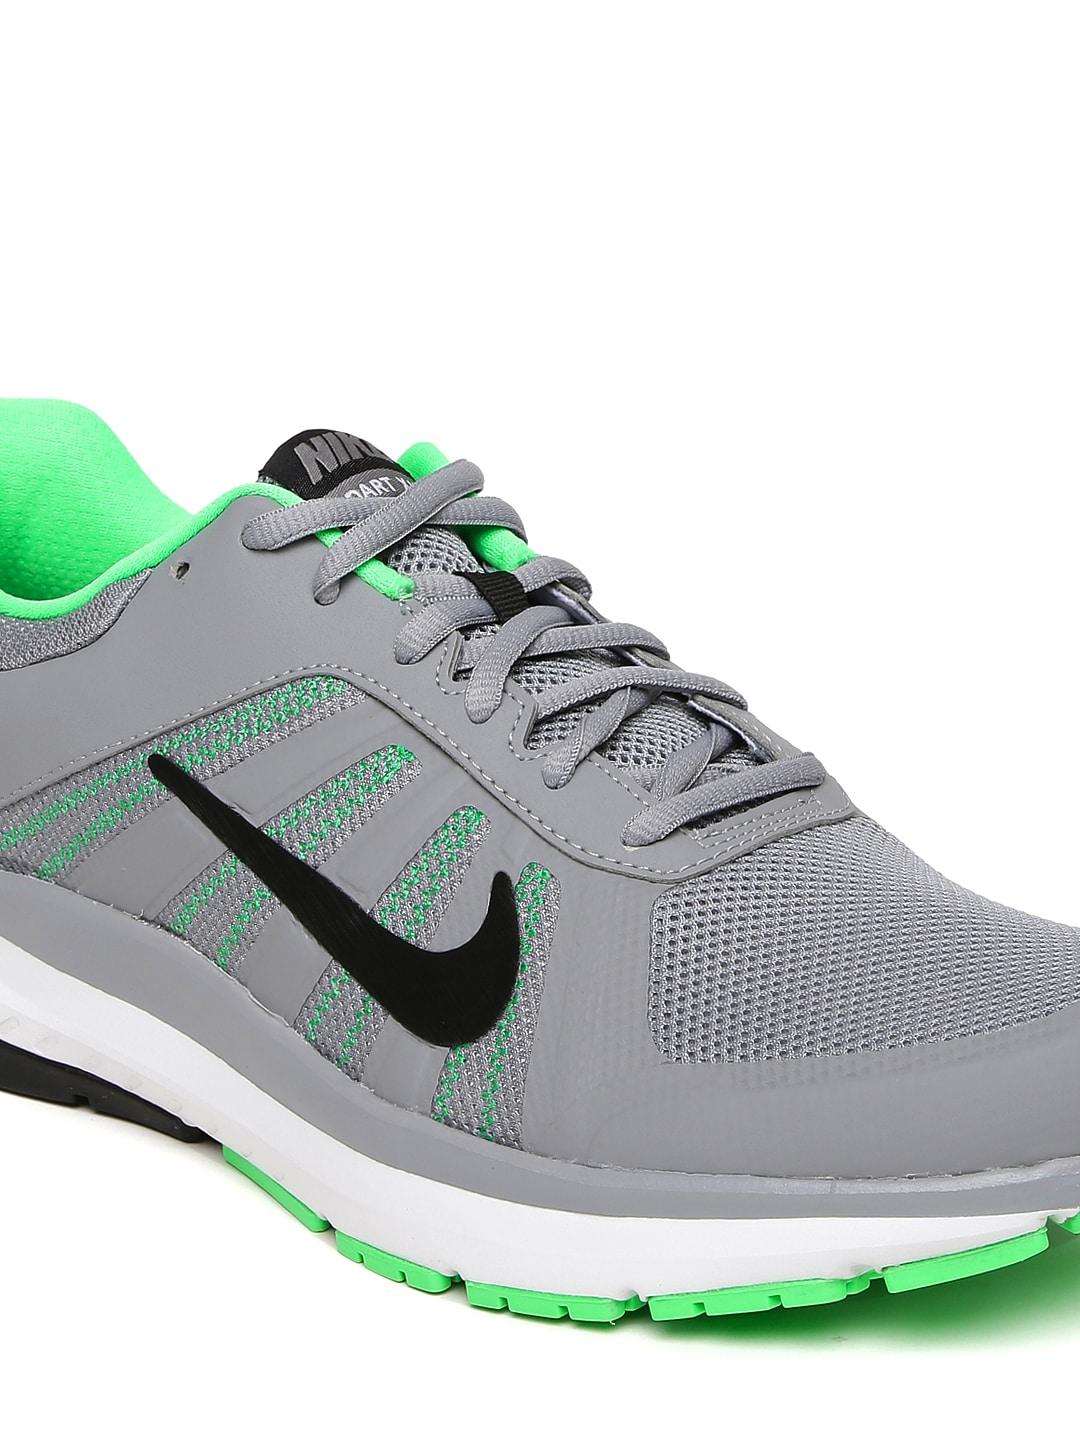 Nike Shoes Price Range In India